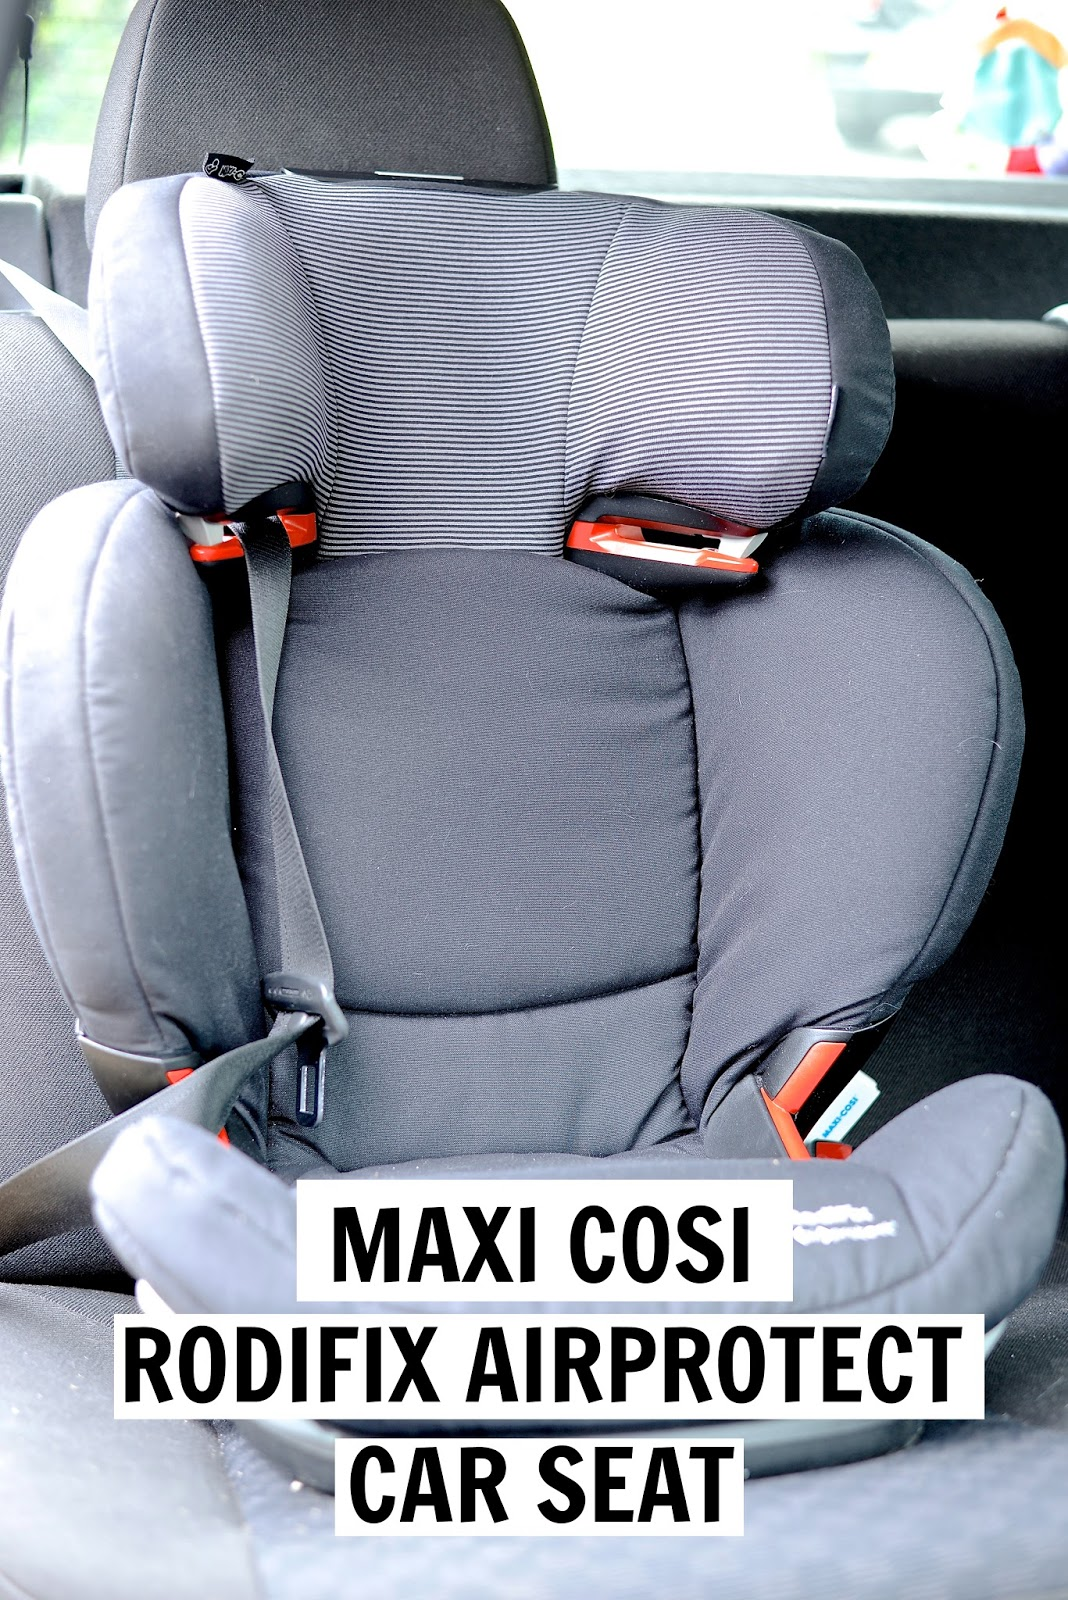 maxi cosi rodifix airprotect car seat review bump to. Black Bedroom Furniture Sets. Home Design Ideas